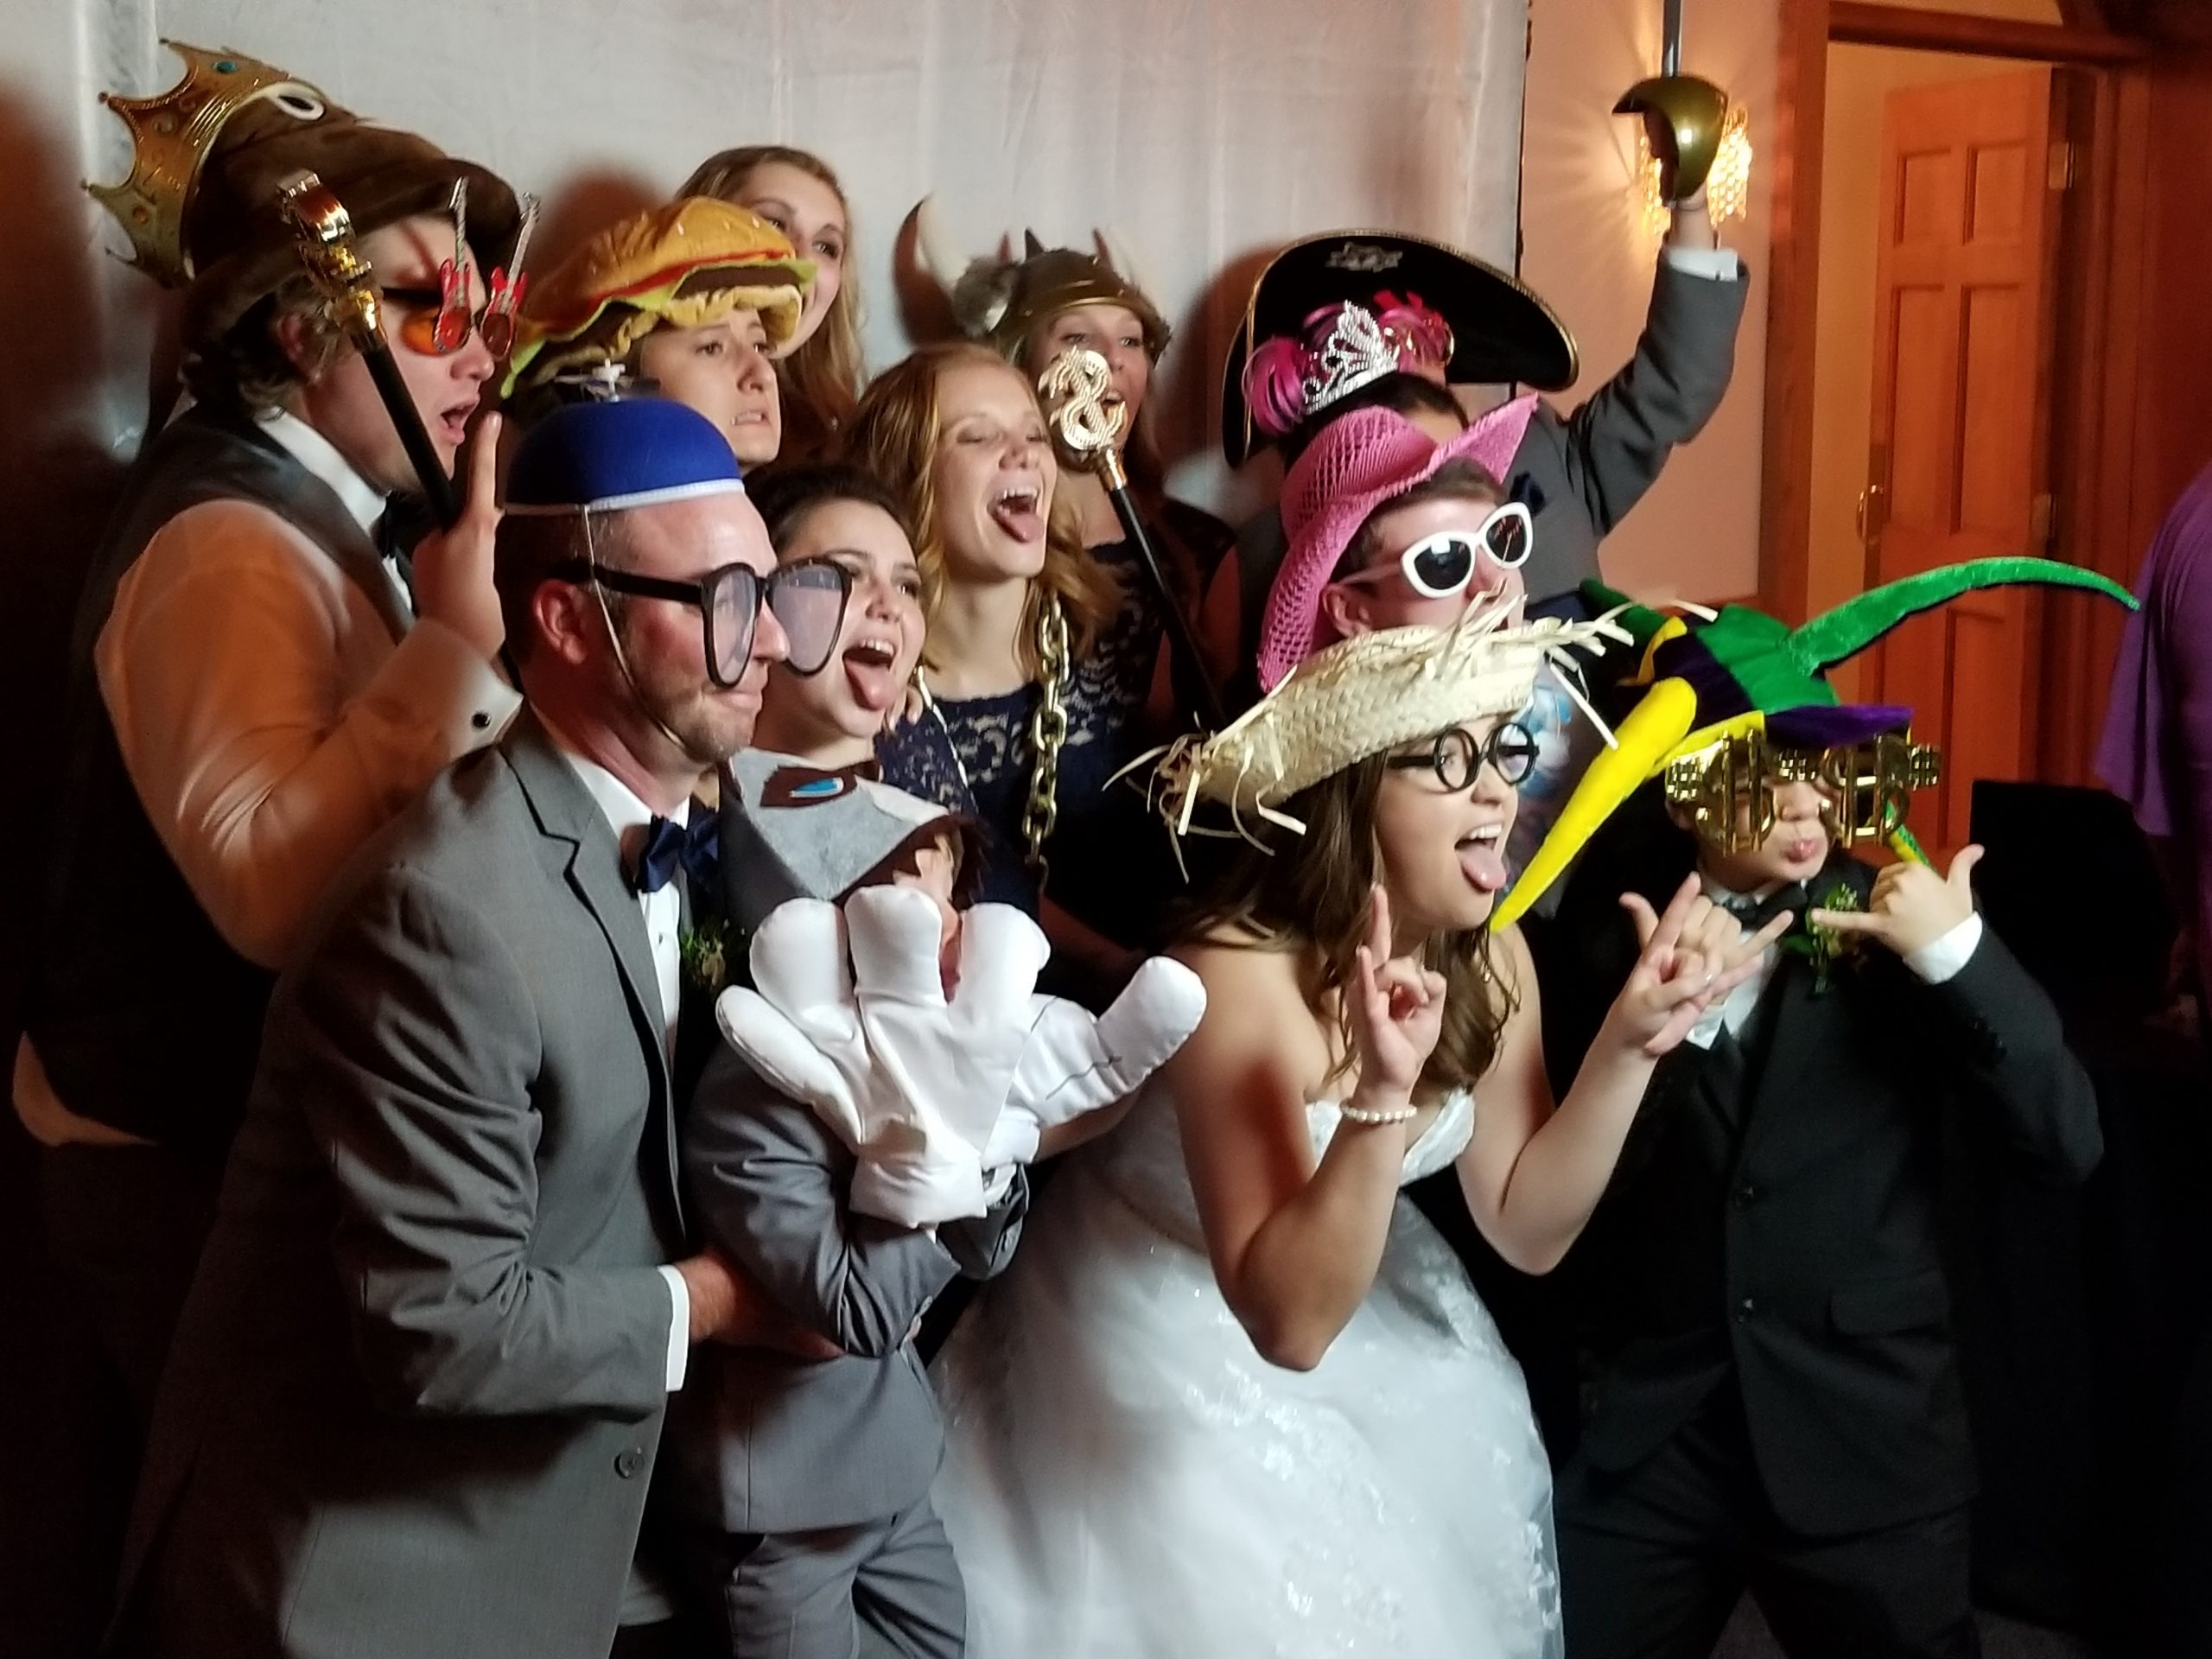 Looking for the best in fun, quality entertainment? You just found it! M & T Event Entertainment is the best in the Eastern Panhandle! Photo Booth fun!